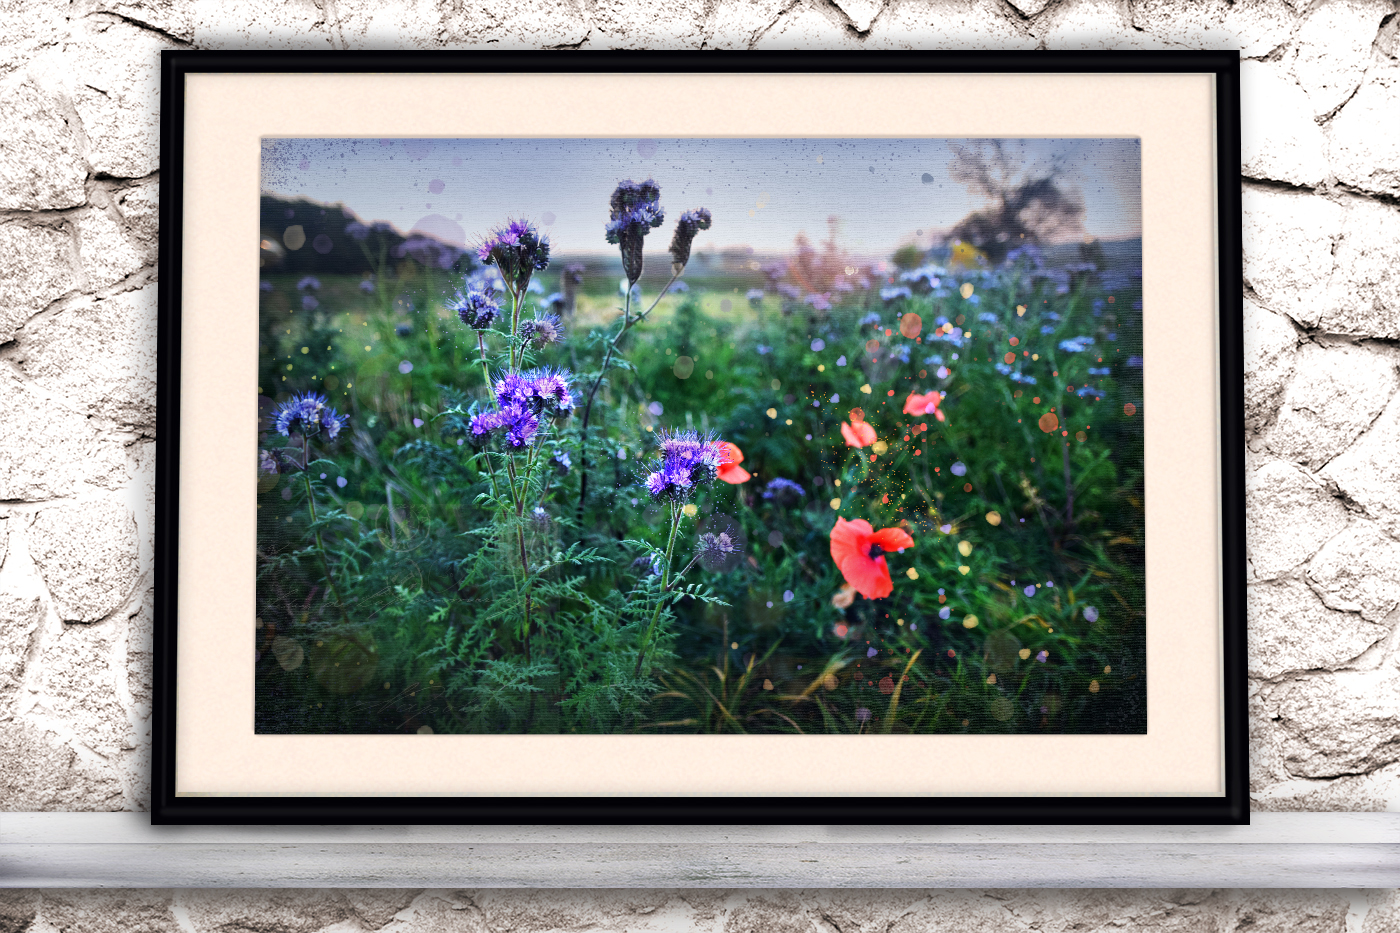 Nature photo, floral photo, summer photo, Wildflowers example image 3